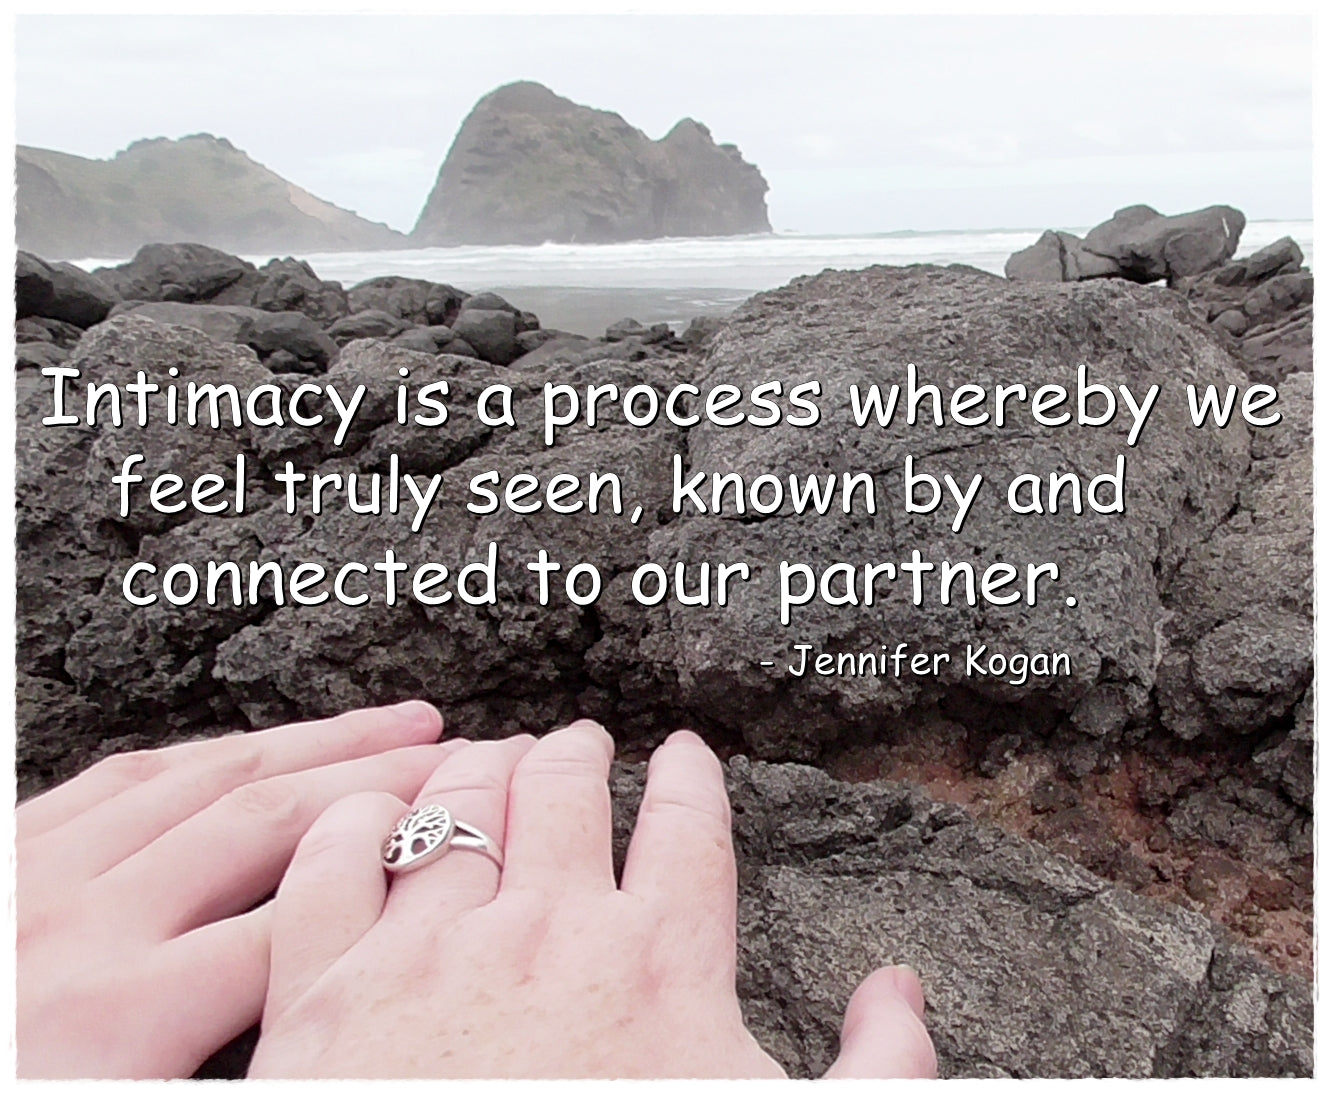 My theme for February - Intimacy